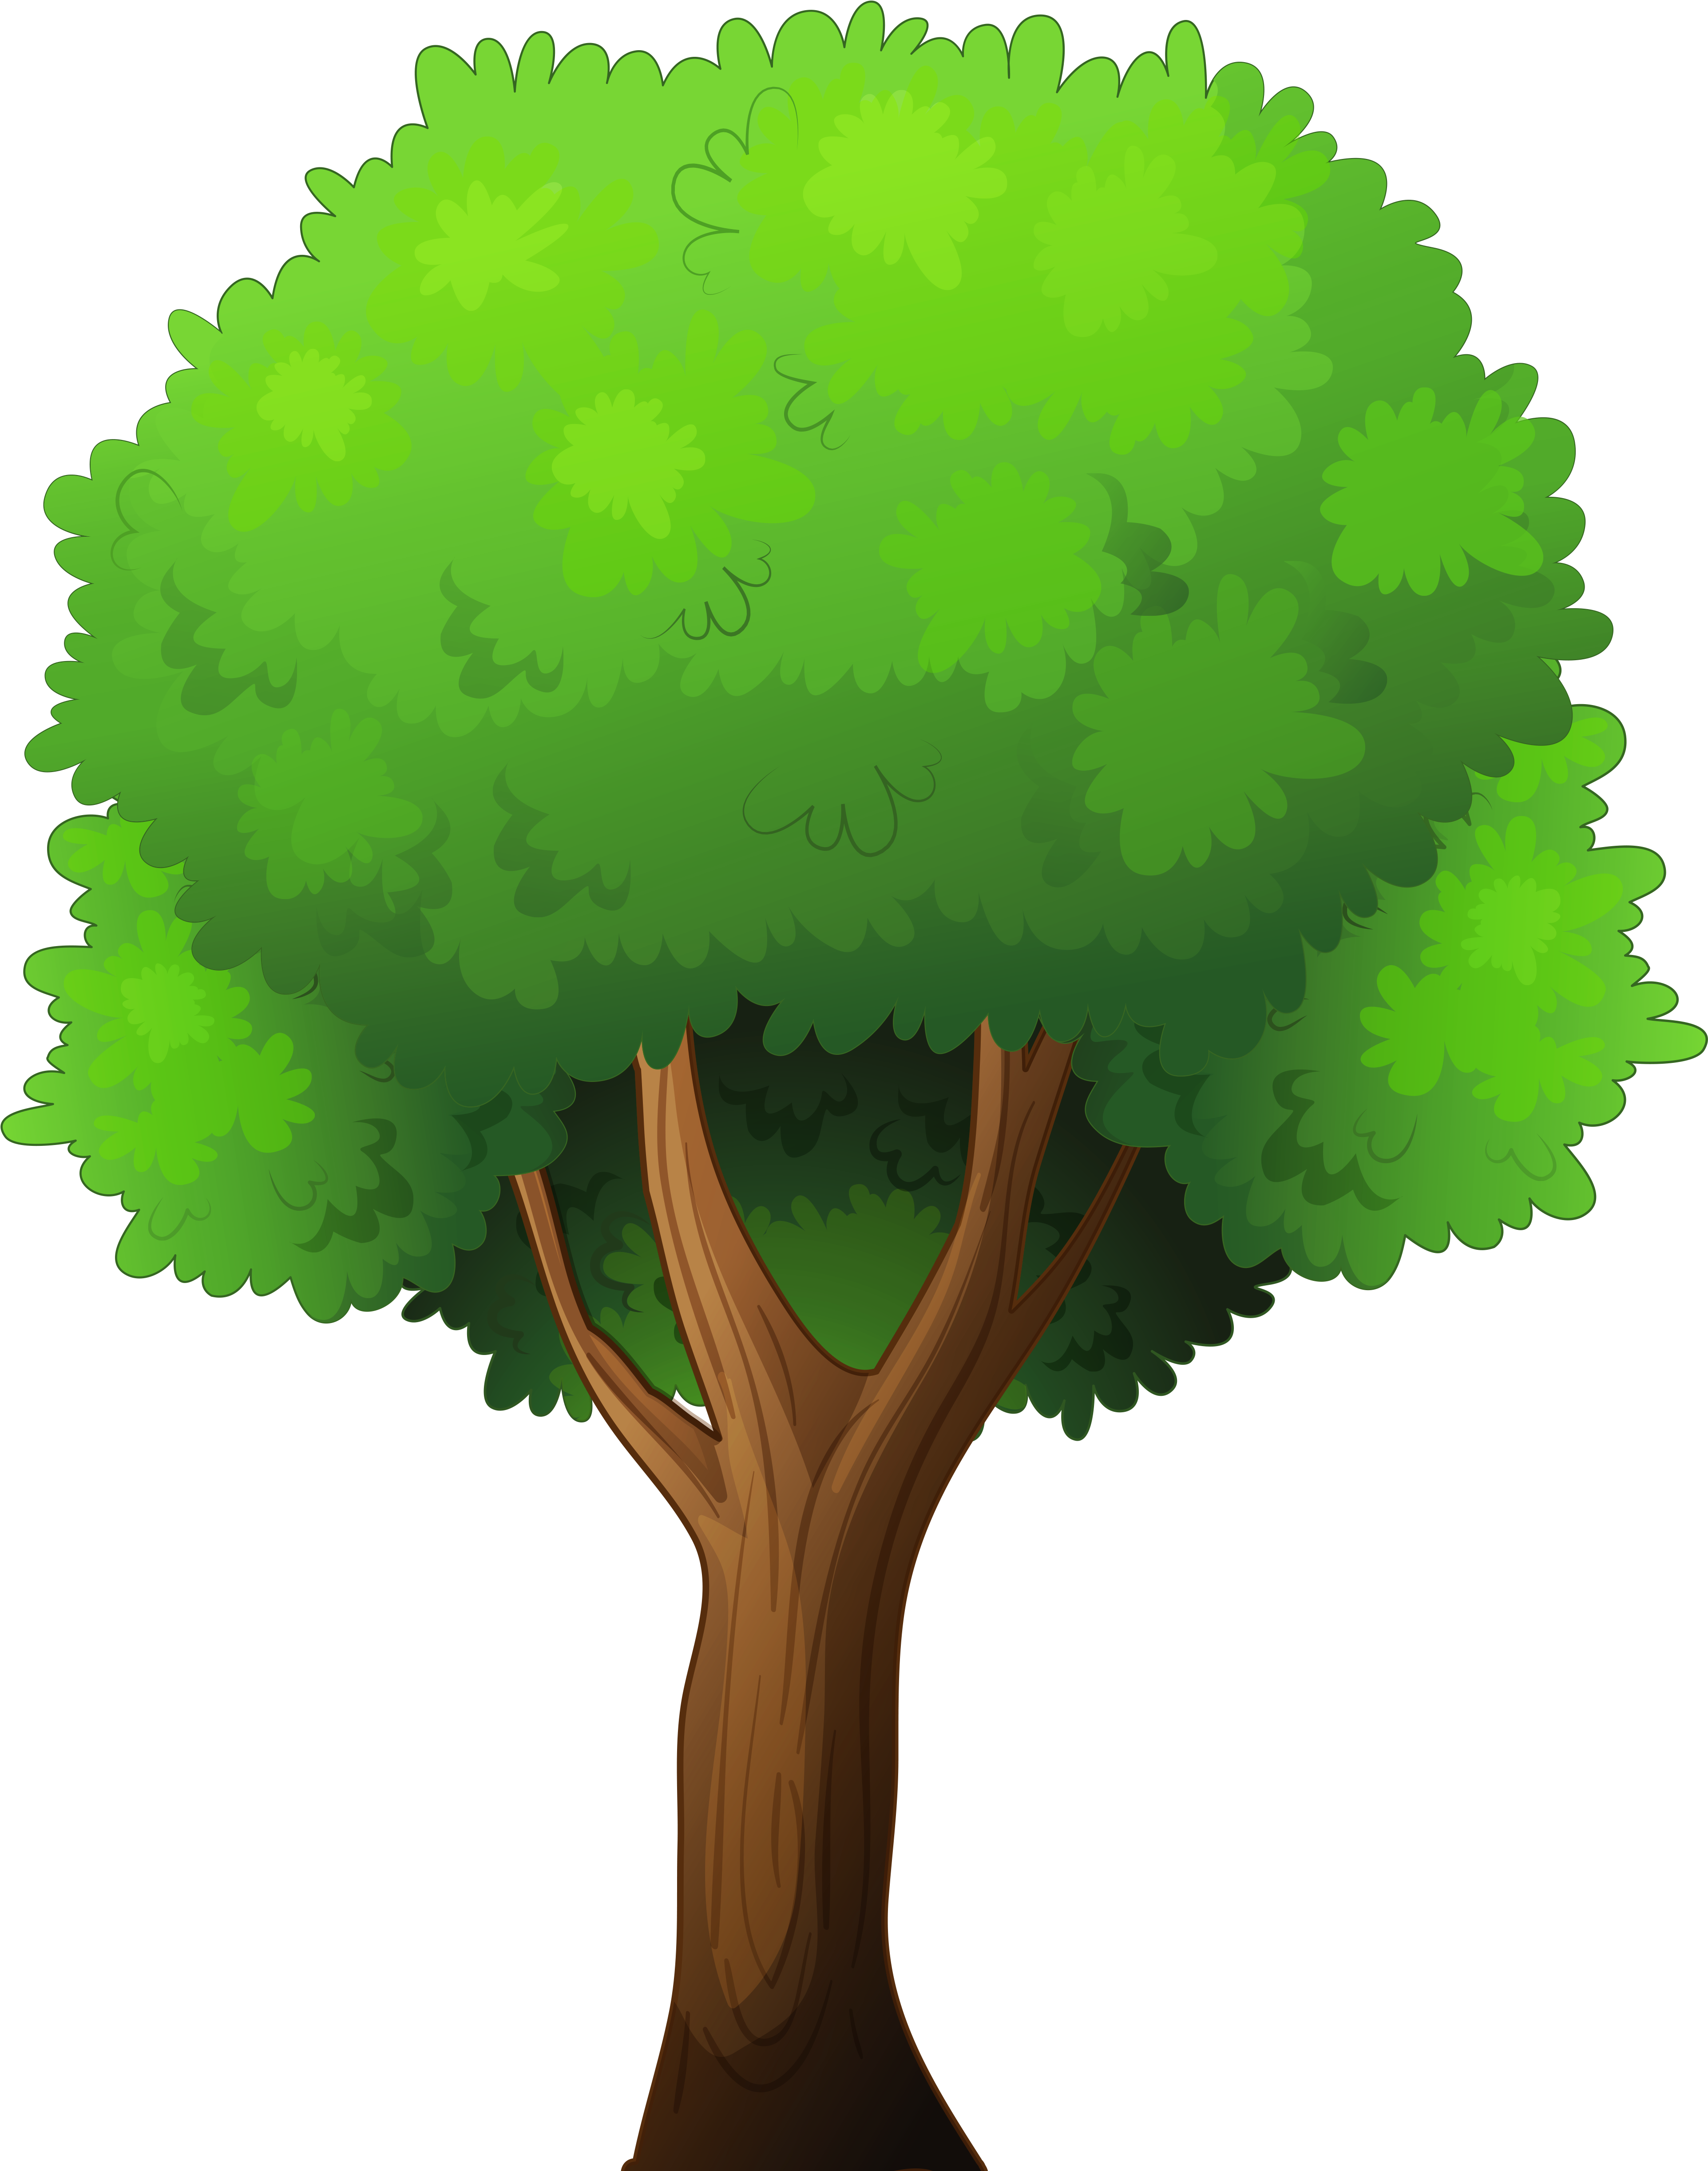 Find Hd Free Tree Png Clip Art Transparent Background Tree Clipart Png Download It Free For Personal Use Tree Clipart Cartoon Trees Tree Painting